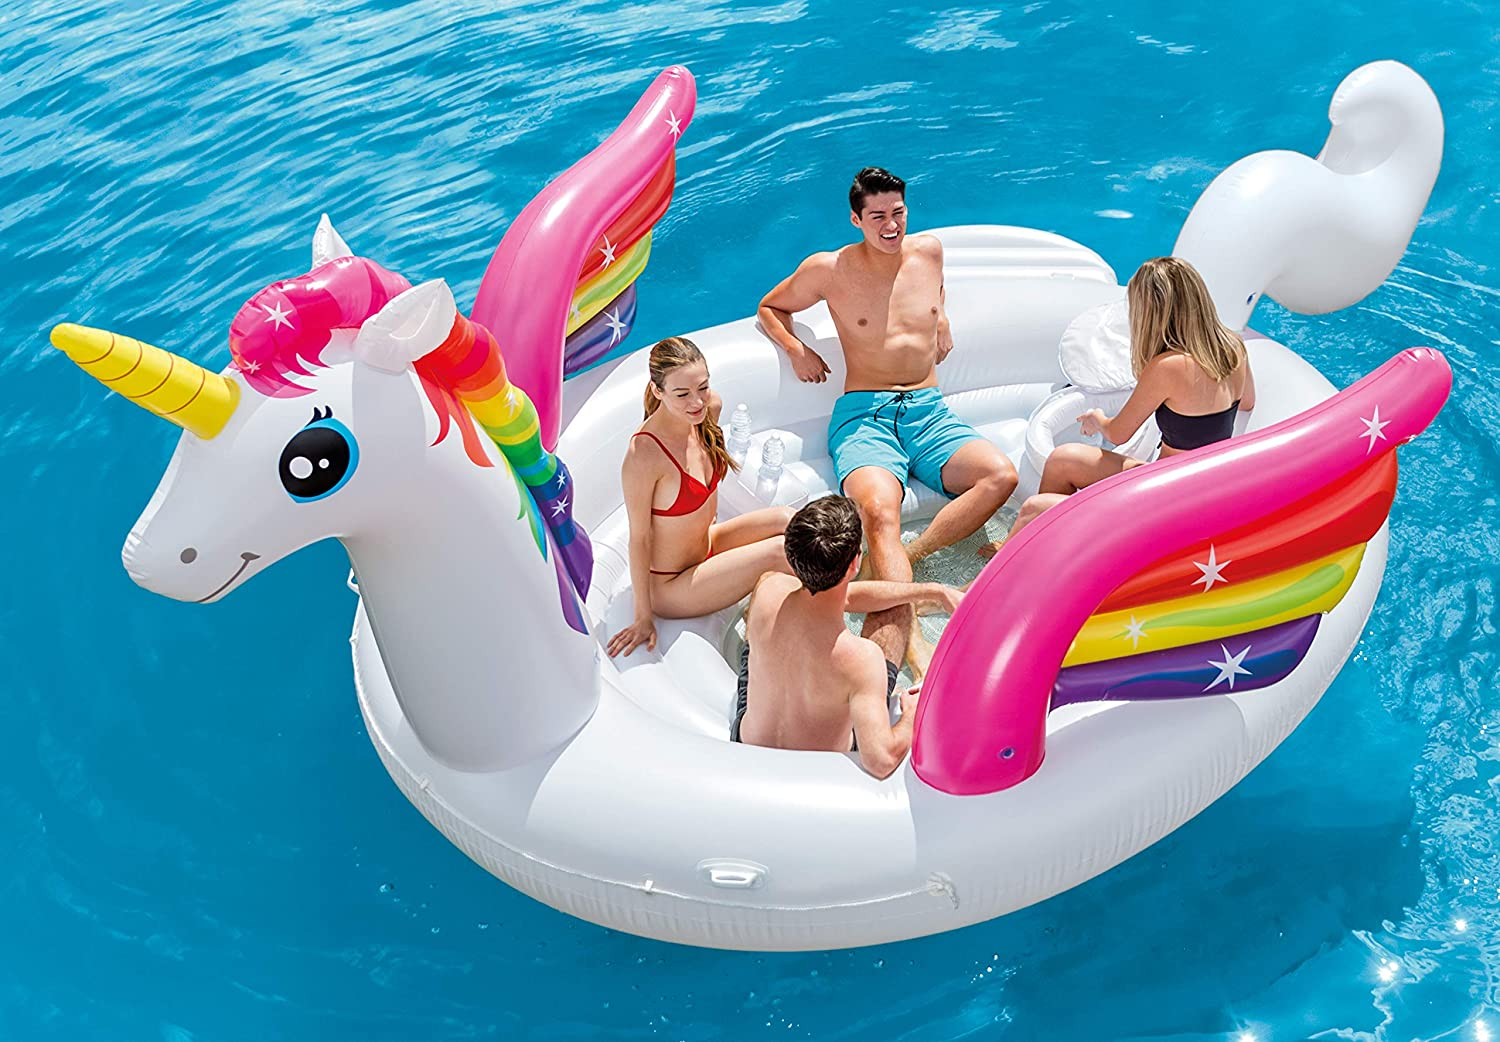 Amazon.com: Intex unicornio fiesta hinchable isla, color ...